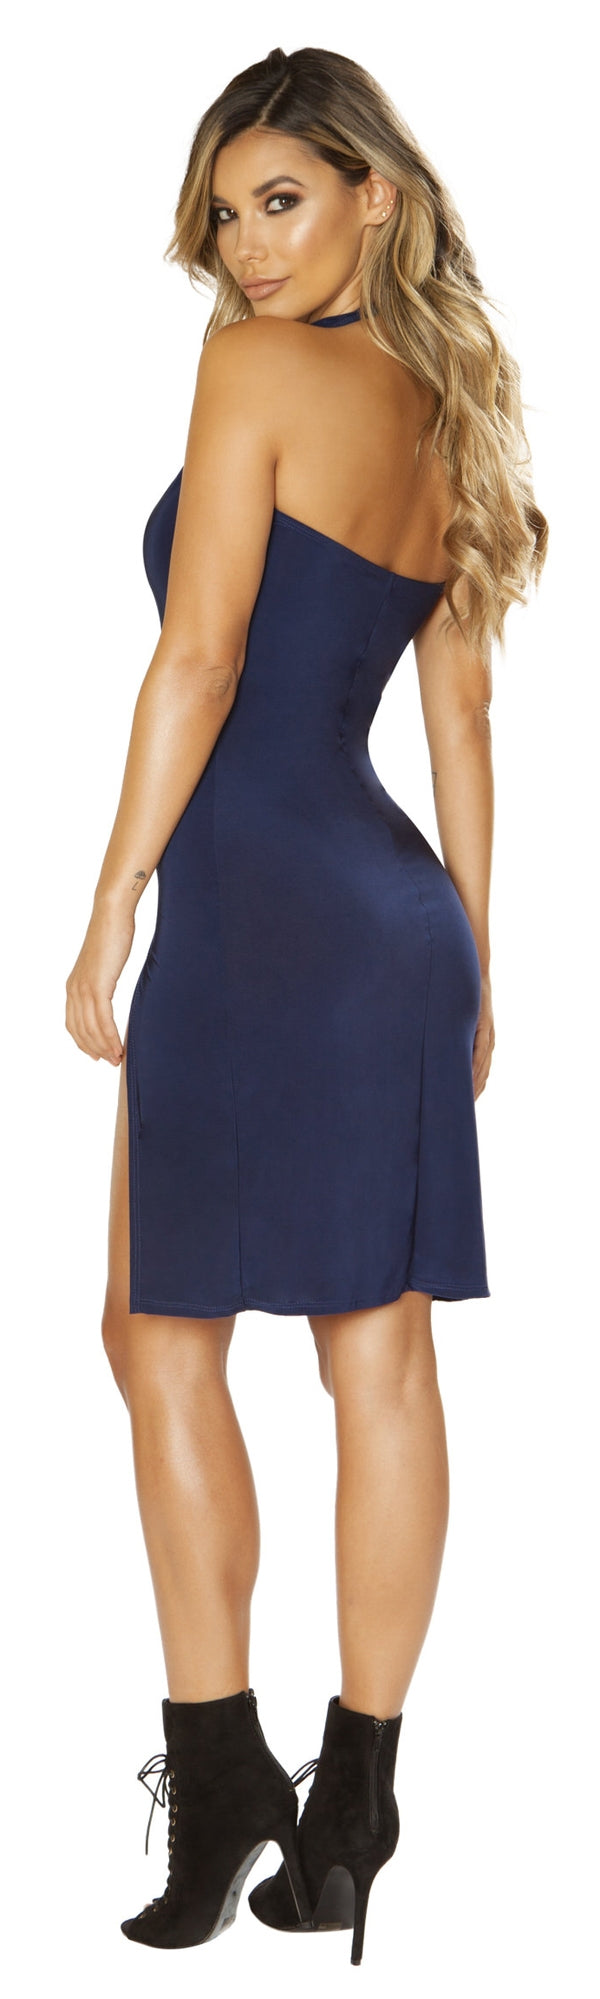 RM-3661 Navy blue low neck dress